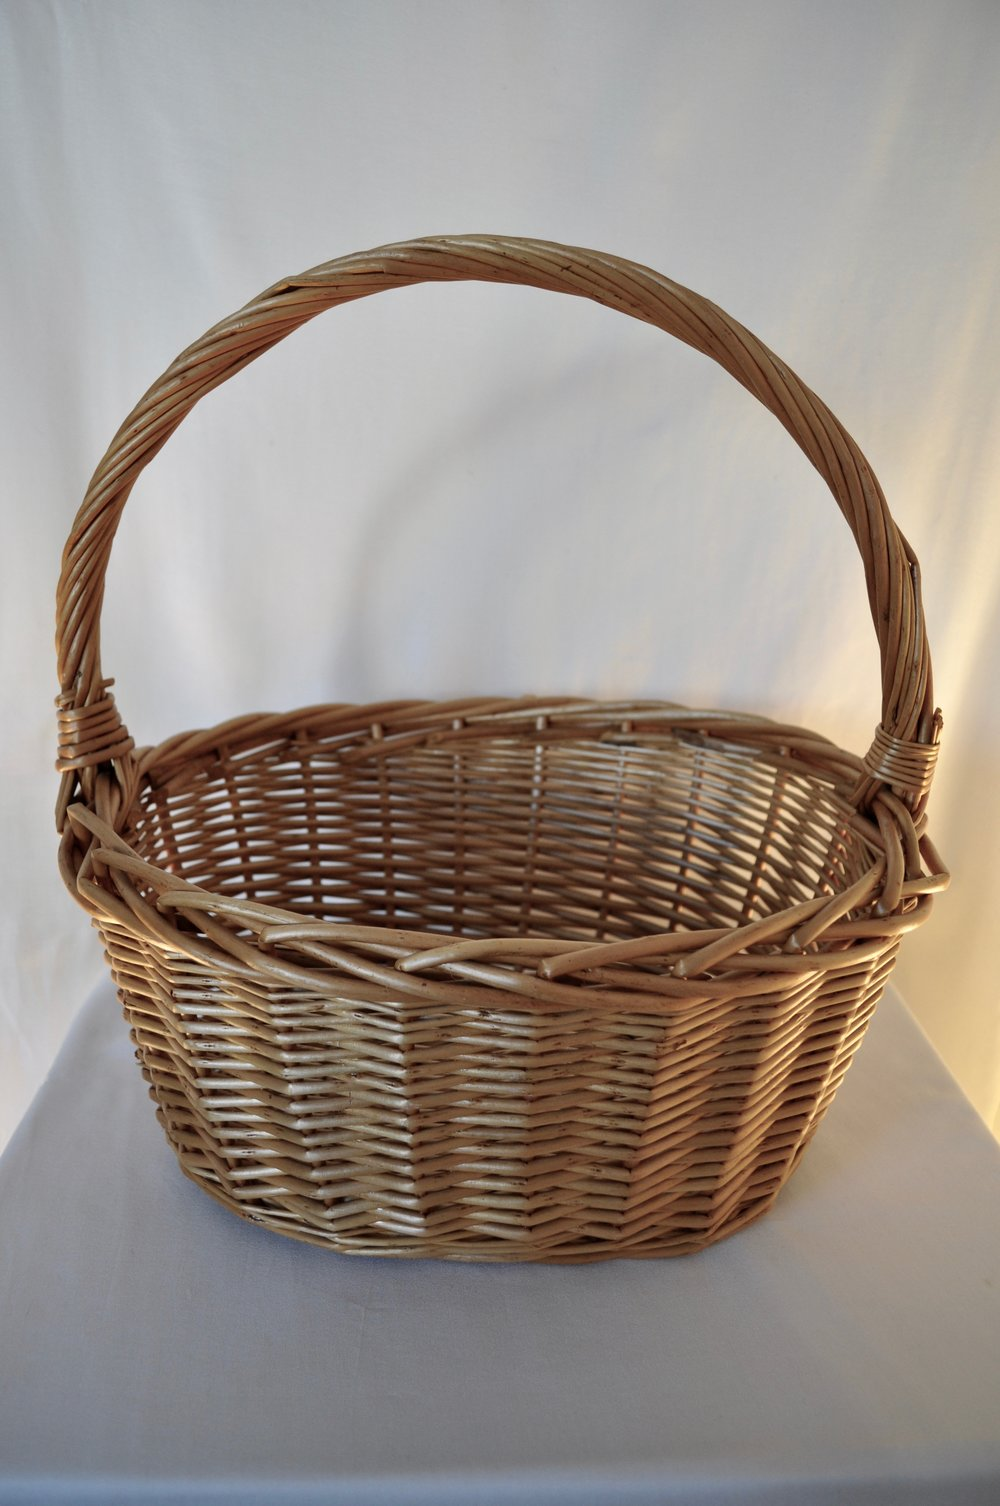 Card Basket - Qty: 1